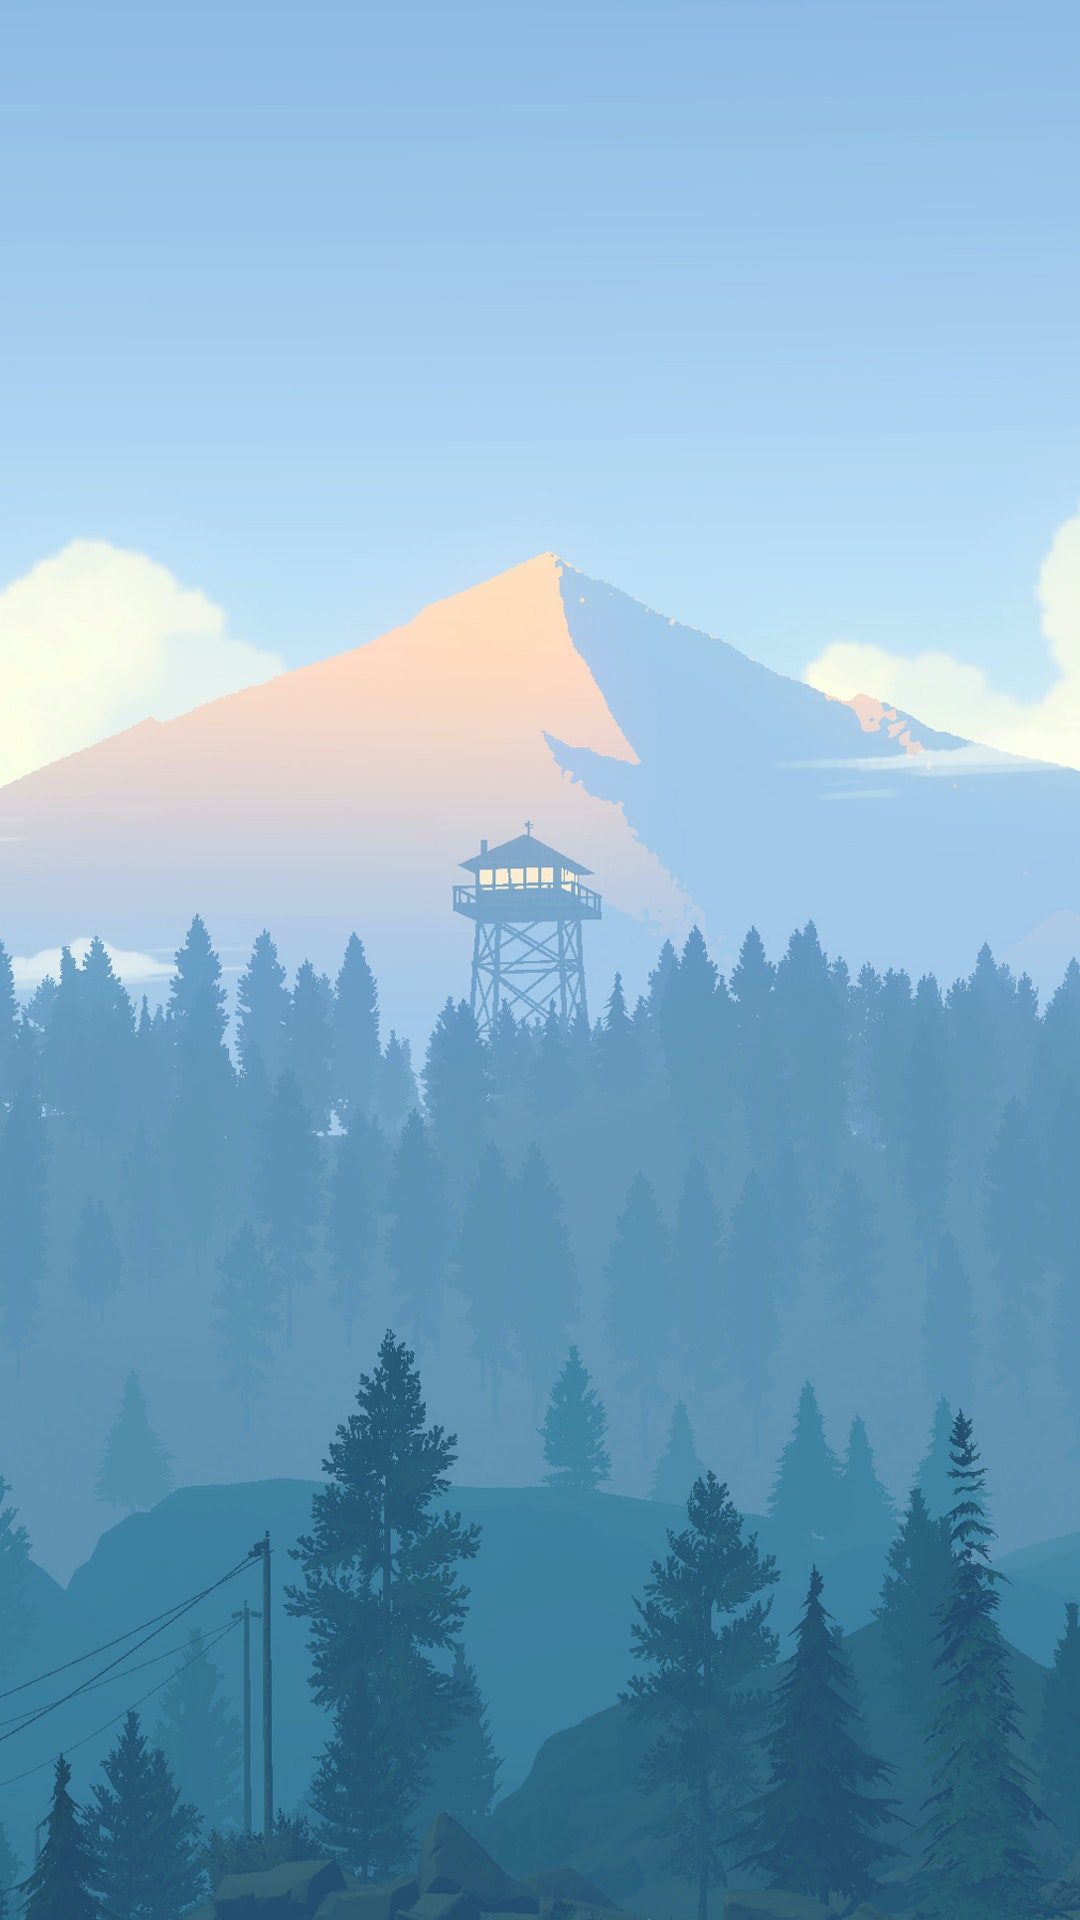 Firewatch E3 Ps4 Banner By Olly Moss